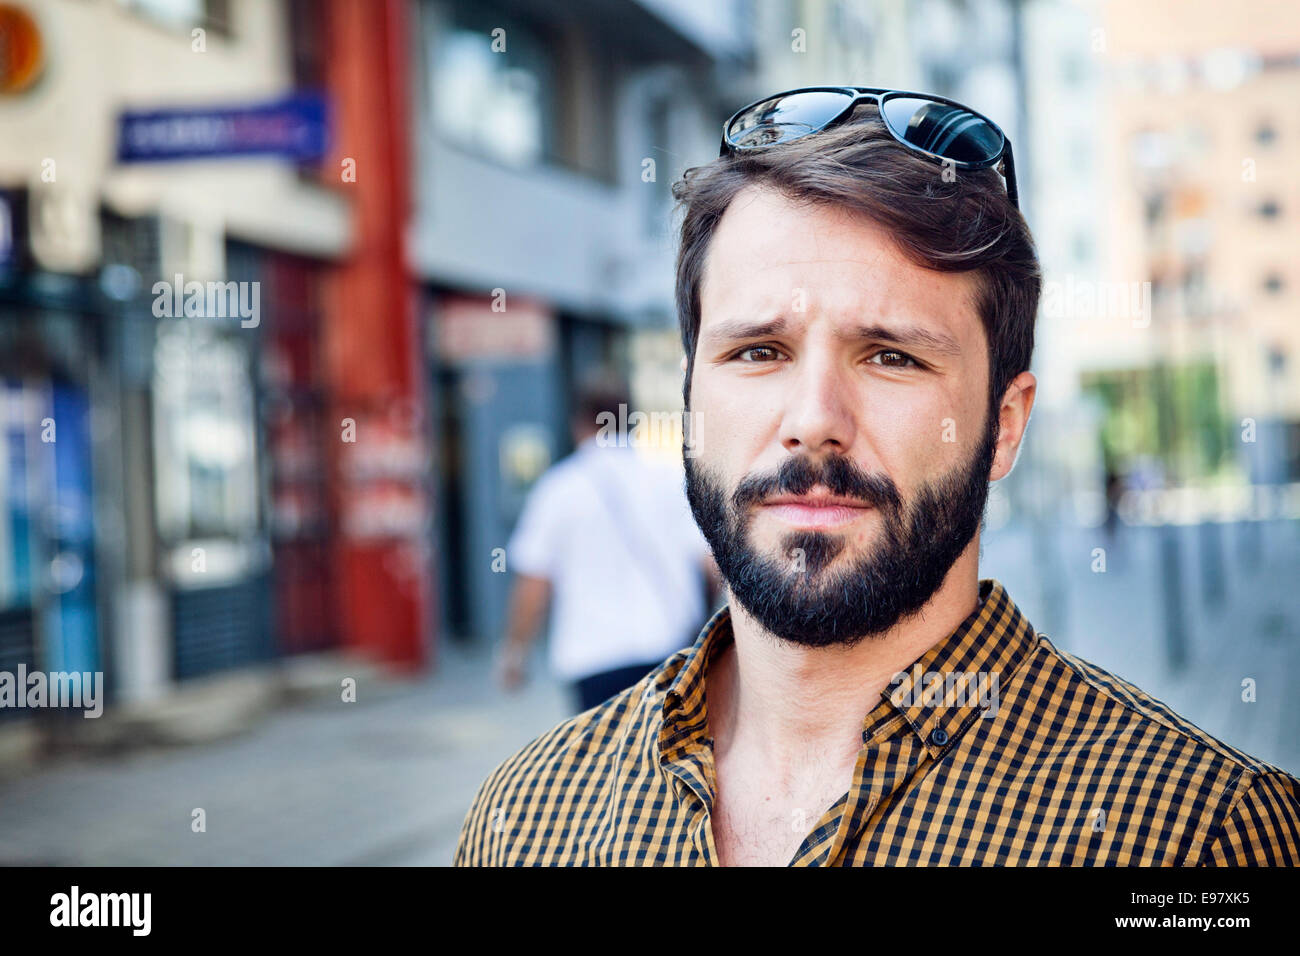 Portrait of young man with beard and sunglasses - Stock Image